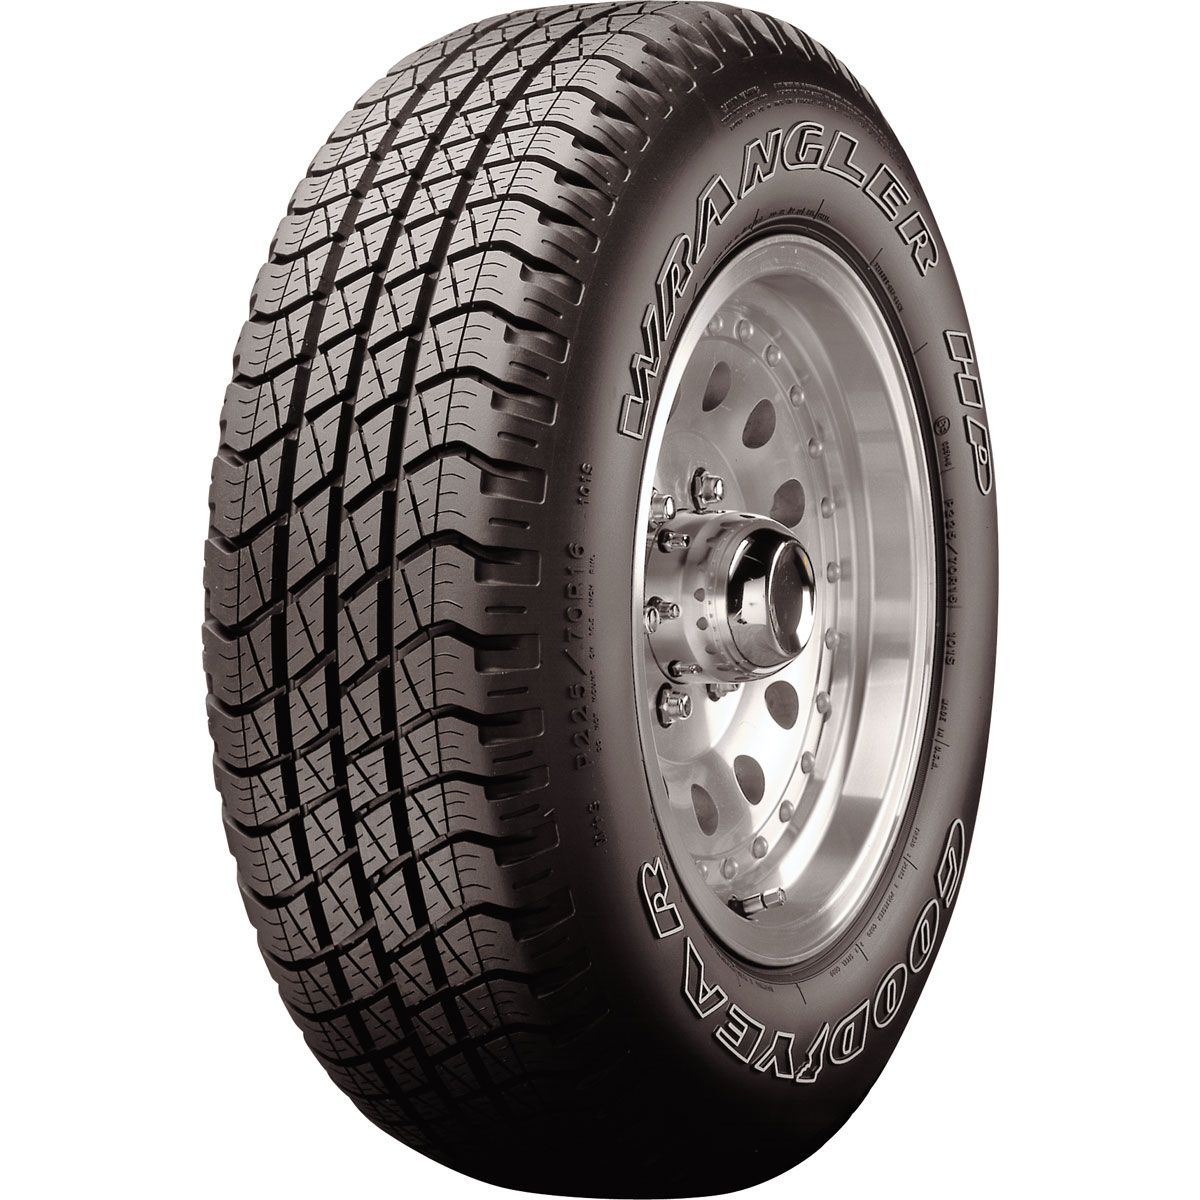 Goodyear Tyres Wrangler Hp Own Goodyear Tires All Season Tyres Tired